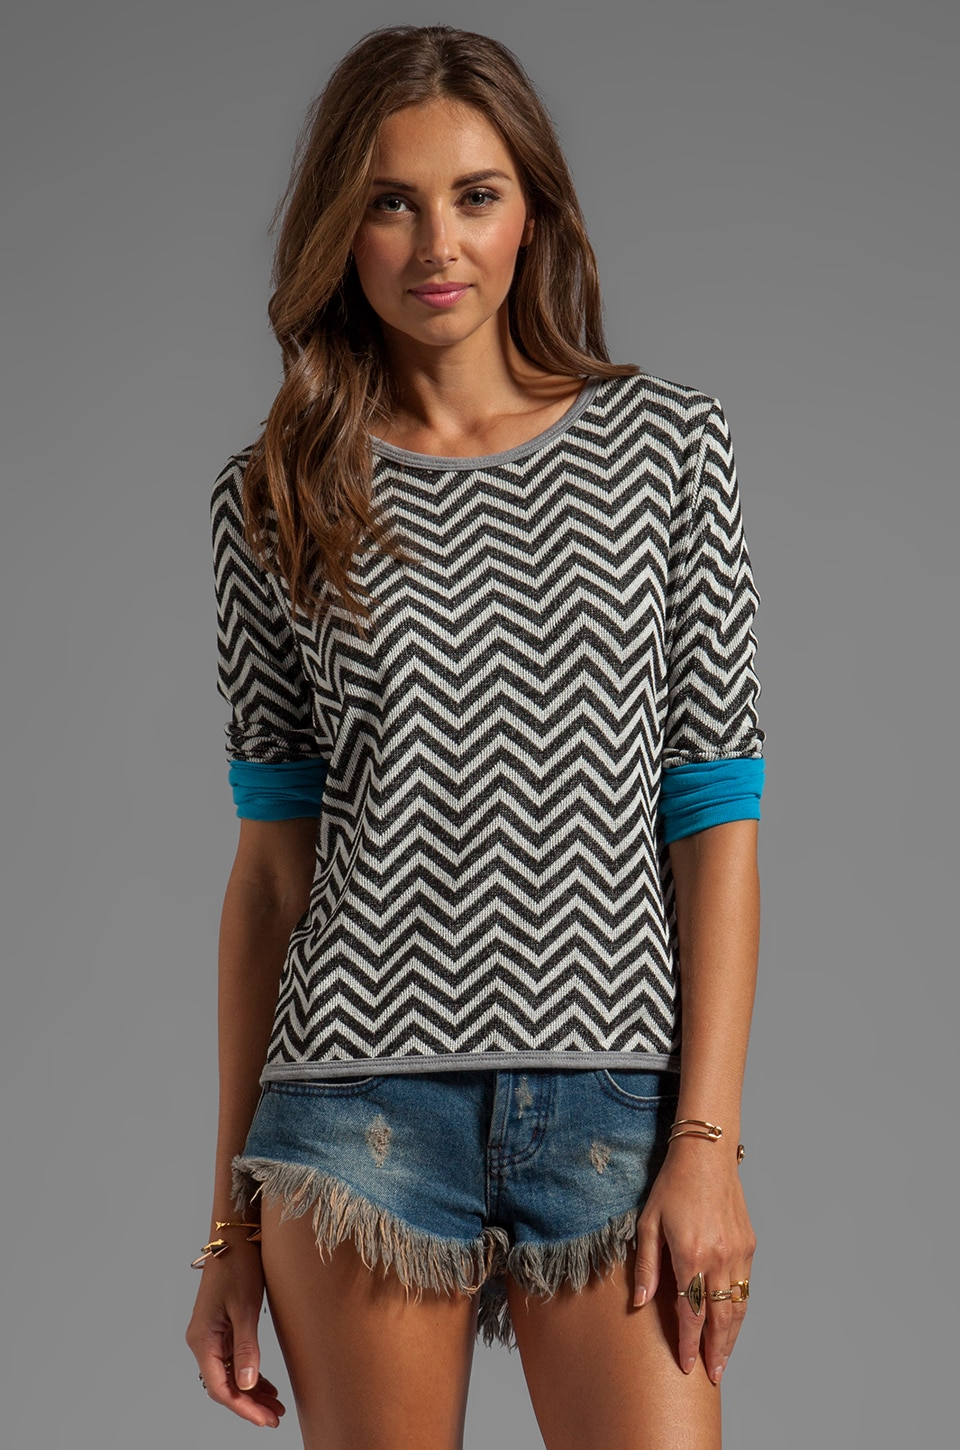 WOODLEIGH Breana Crochet Top in Black/White Stripe Multi